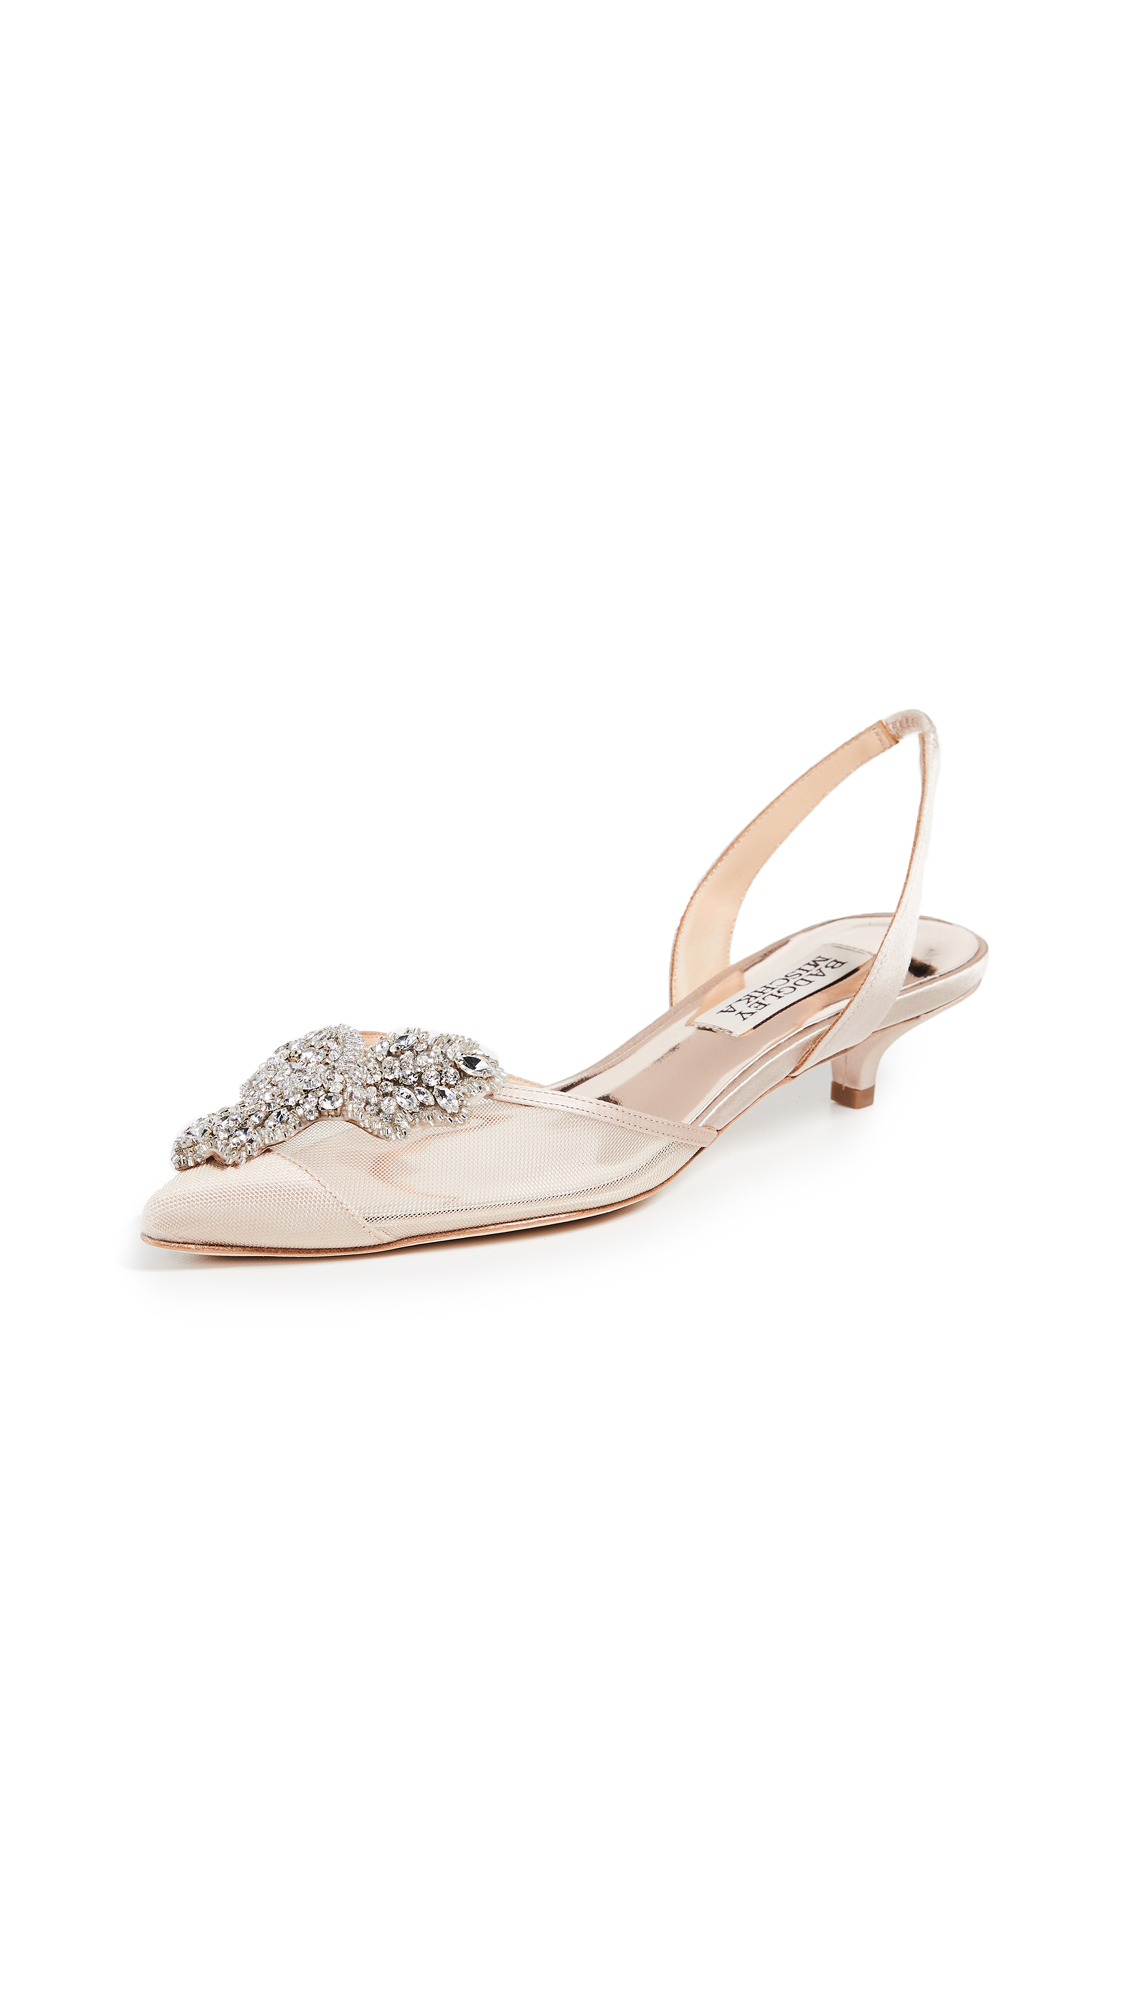 Badgley Mischka Vera Pointed Toe Slingback Pumps - Latte